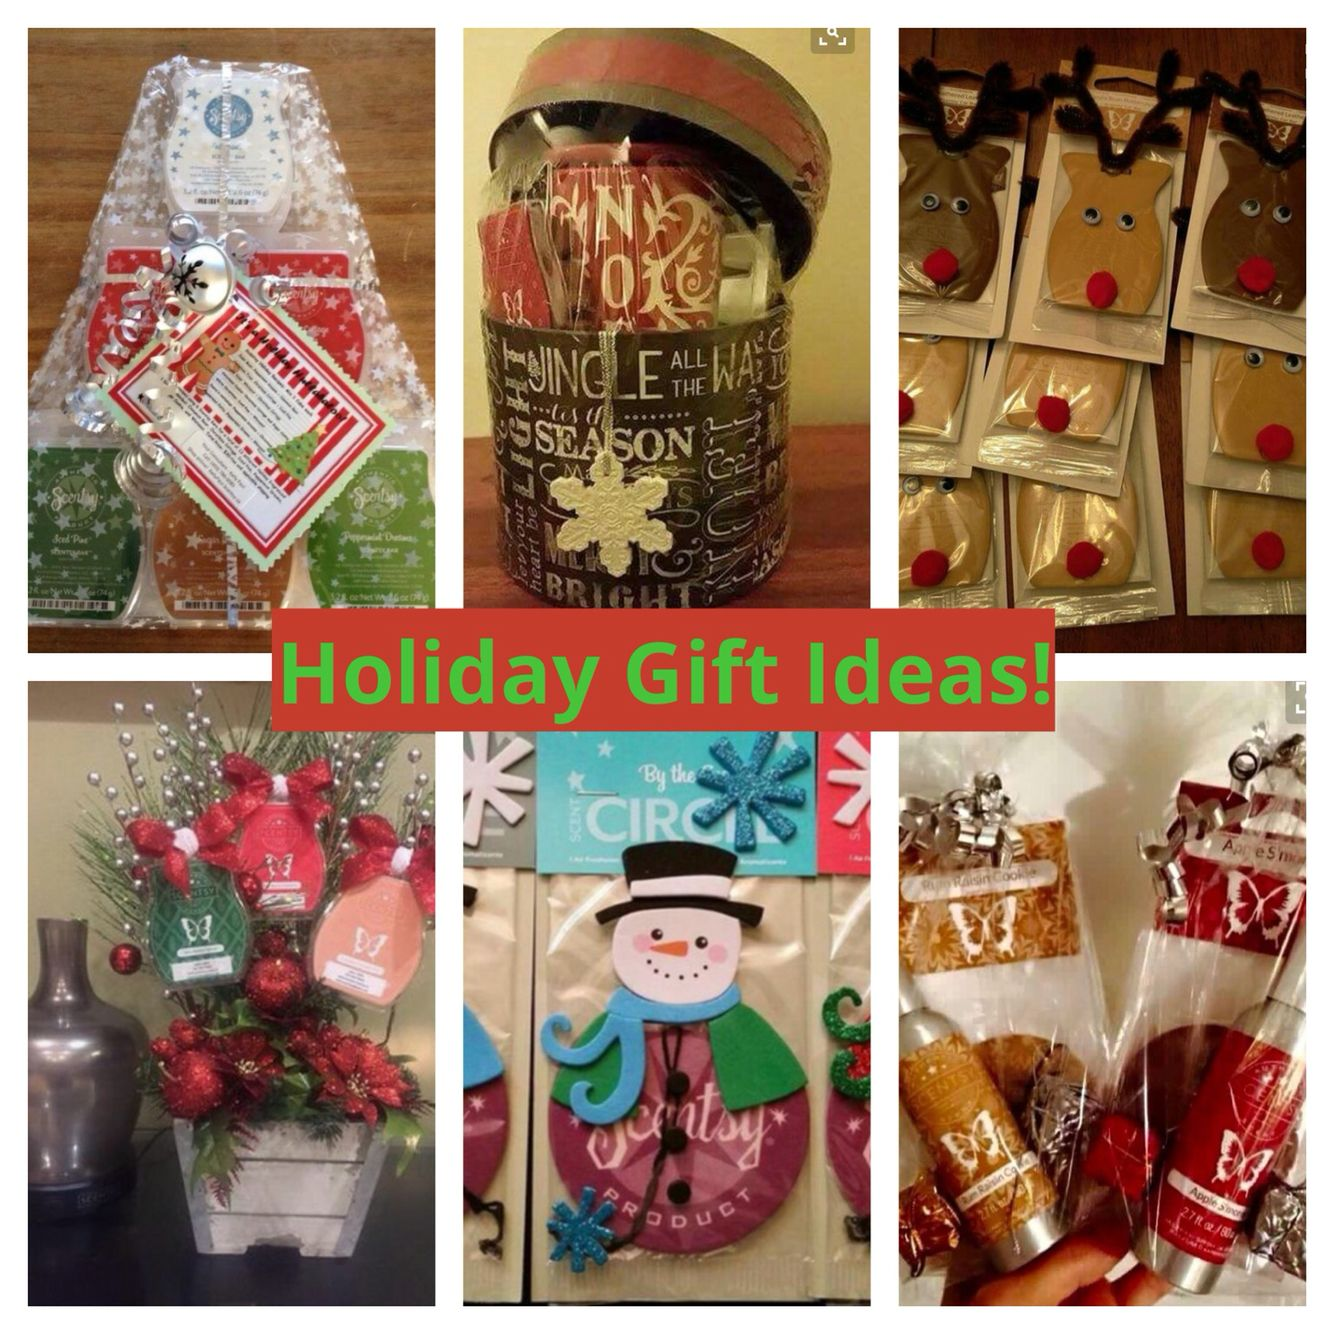 Scentsy Christmas Gifts.Scentsy Holiday Gift Ideas Desdiehl Scentsy Us Scentsy